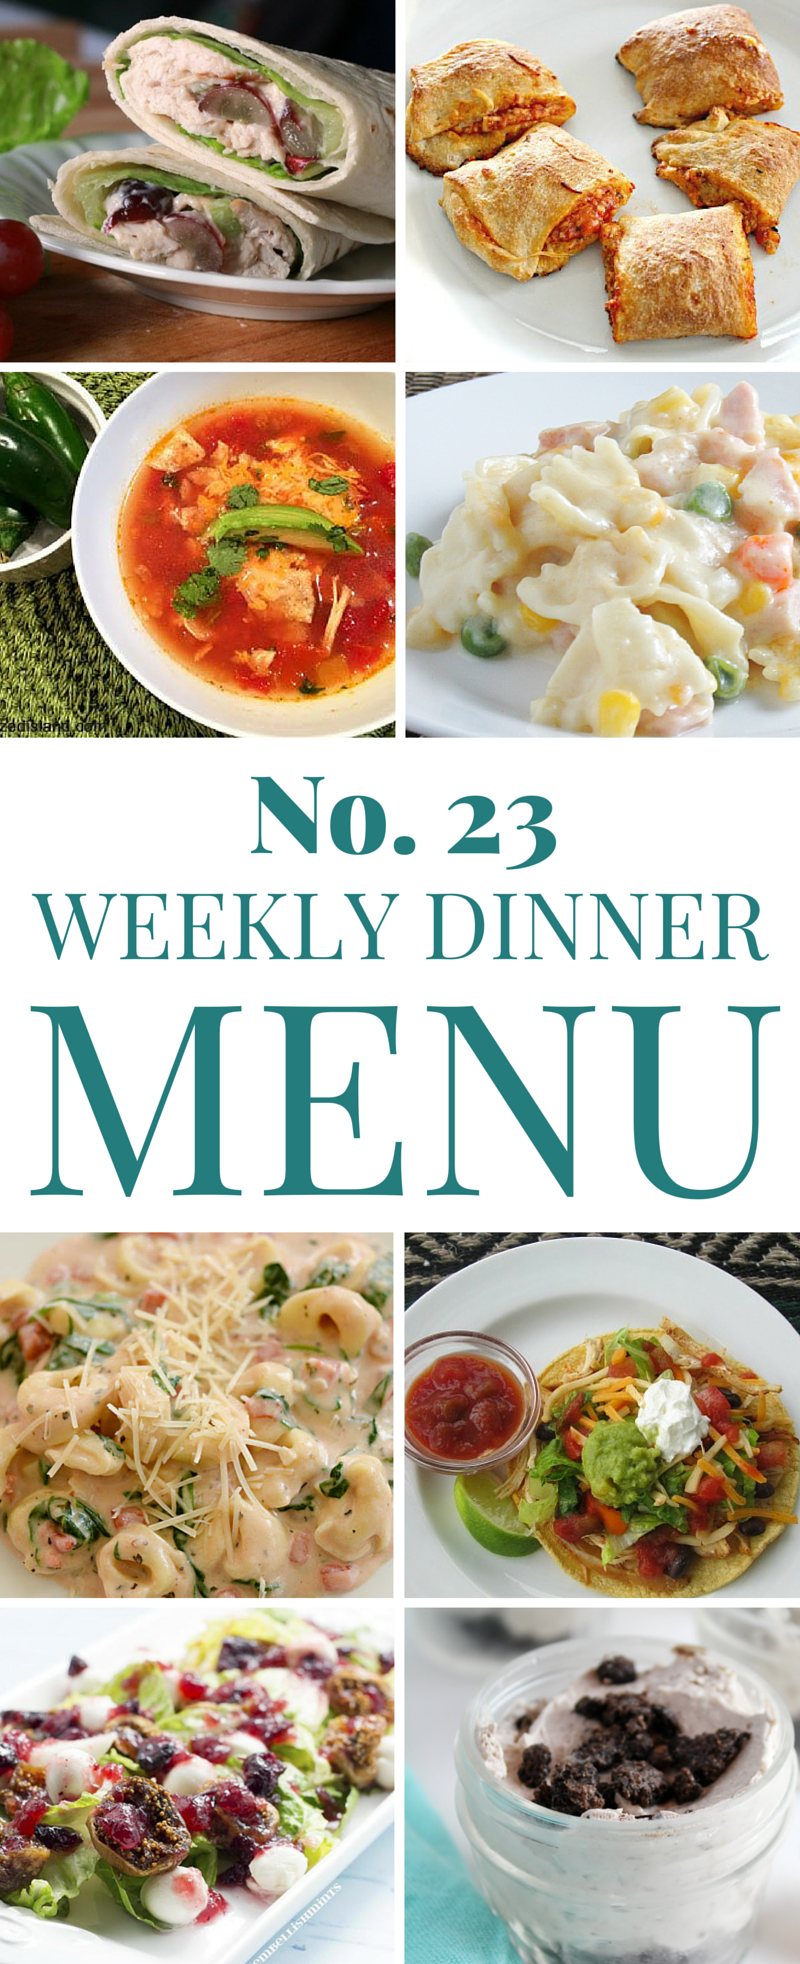 Weekly Dinner Menu 23 - Seven dinners and one dessert each week!